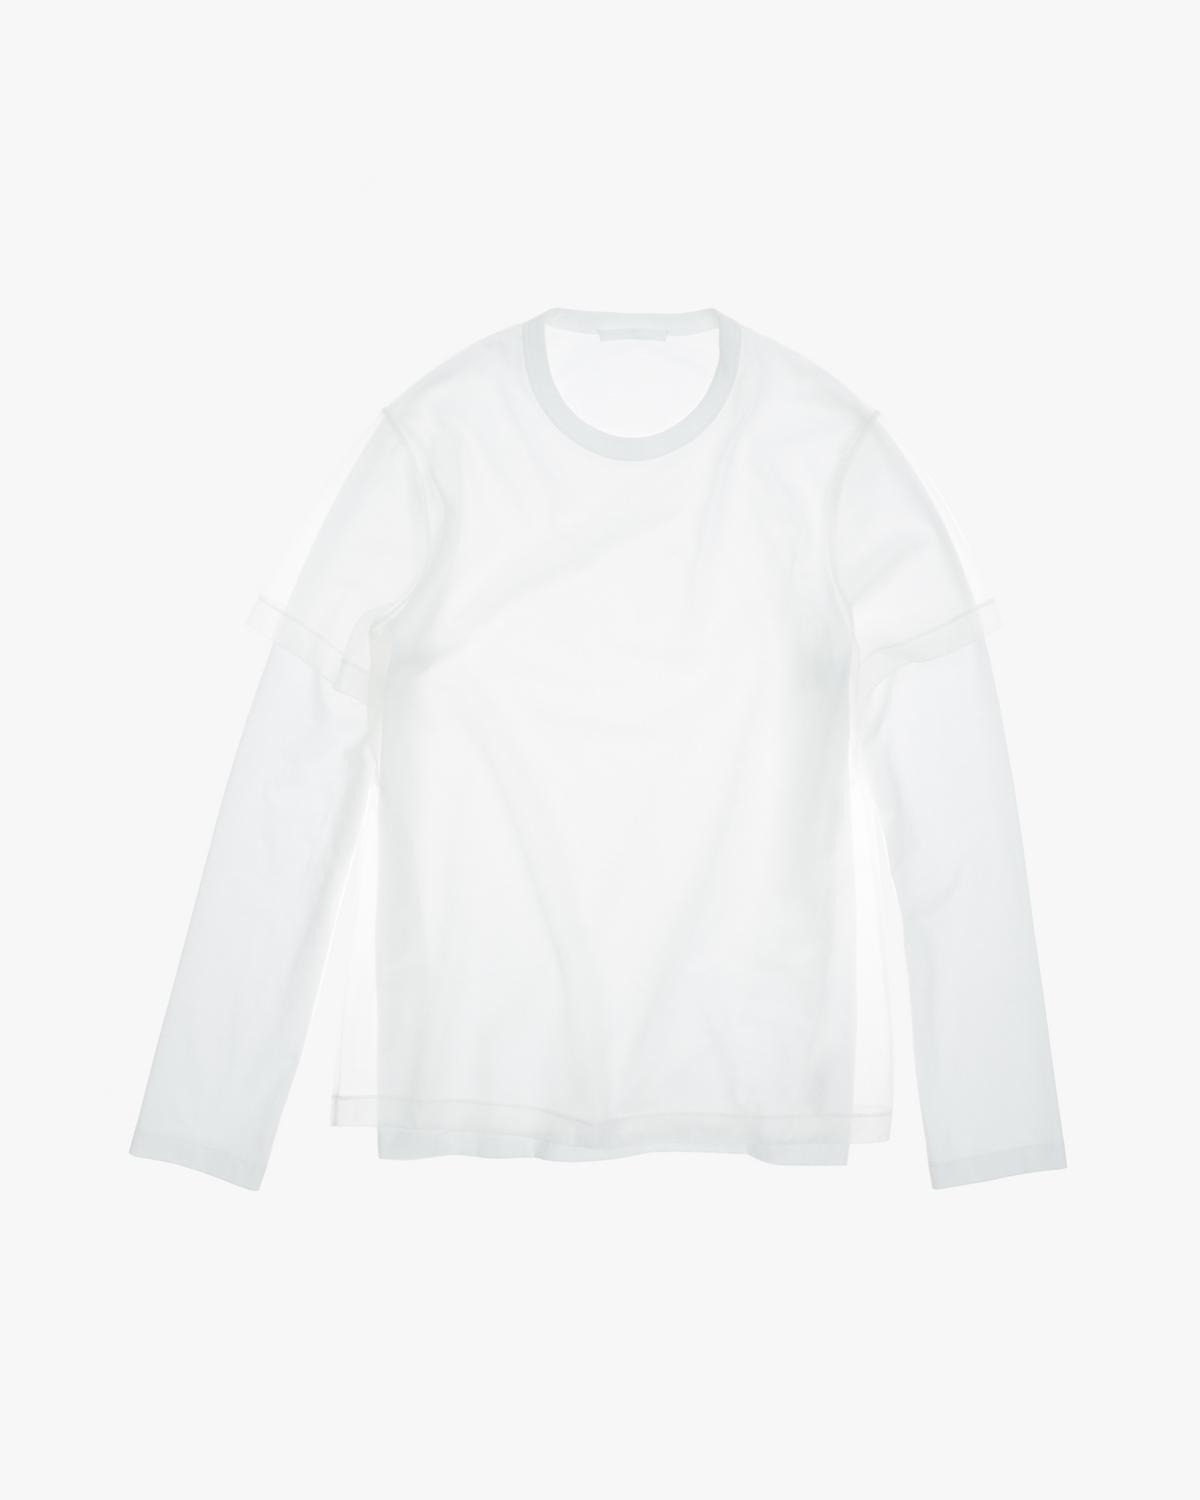 Double Long-Sleeve T-Shirt